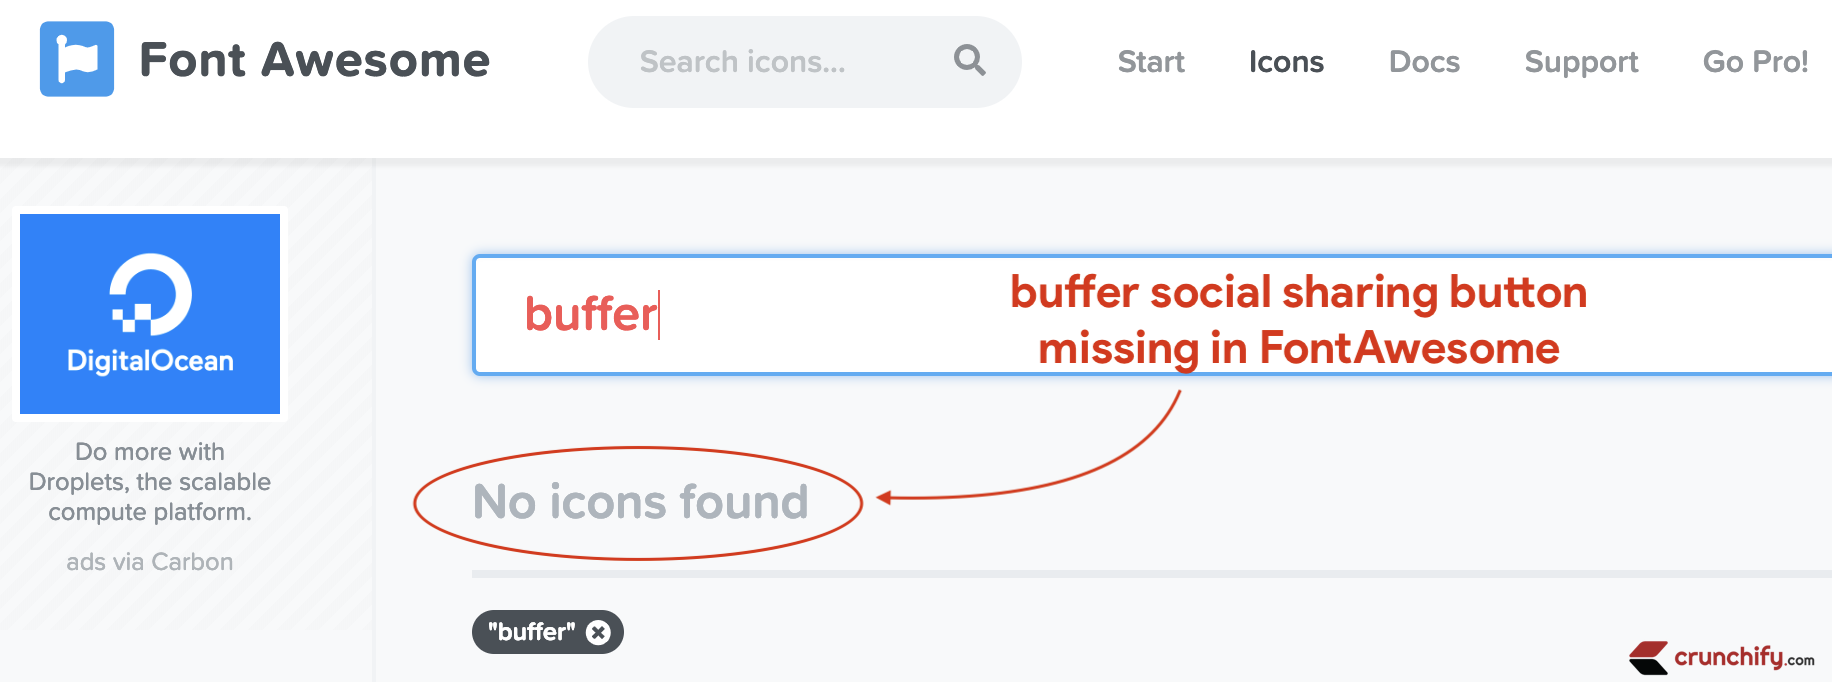 buffer social sharing button missing in FontAwesome